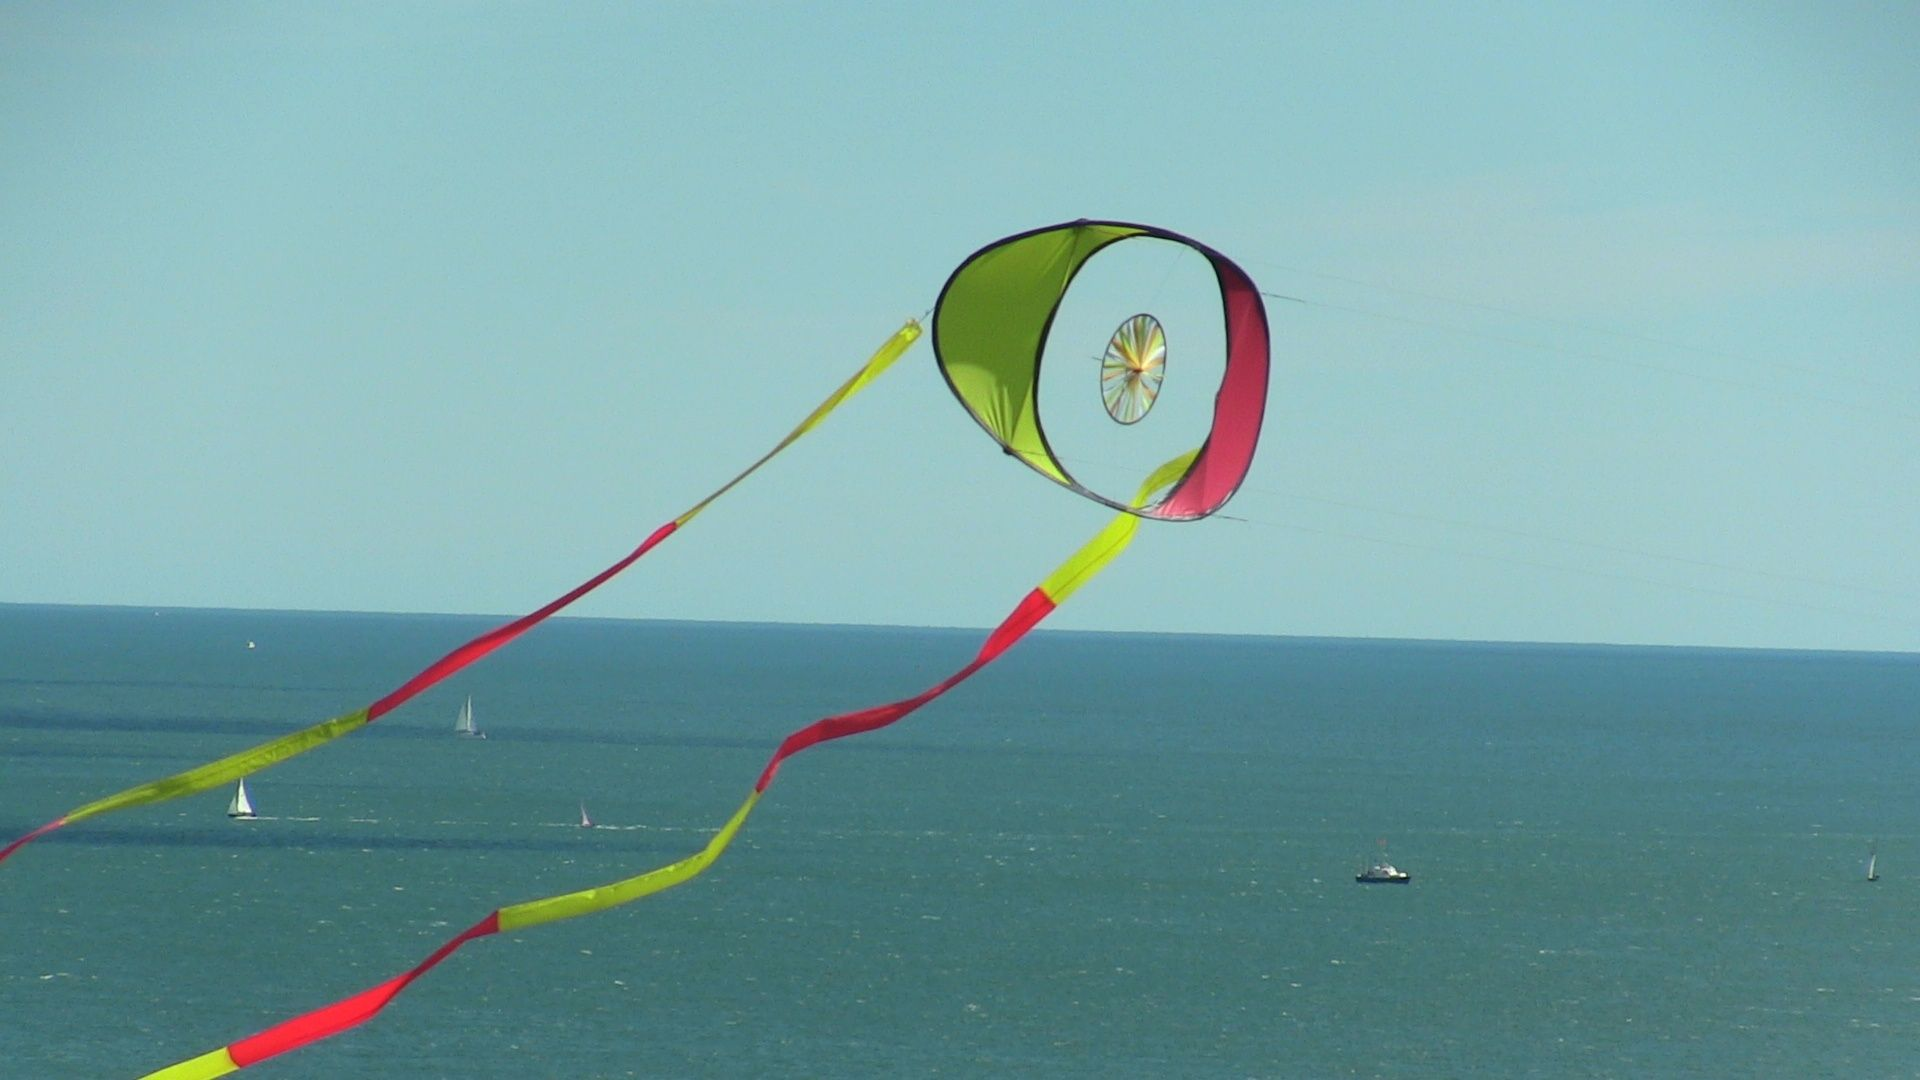 kite flying sky bowleaze download hd wallpapers HD 1920x1080